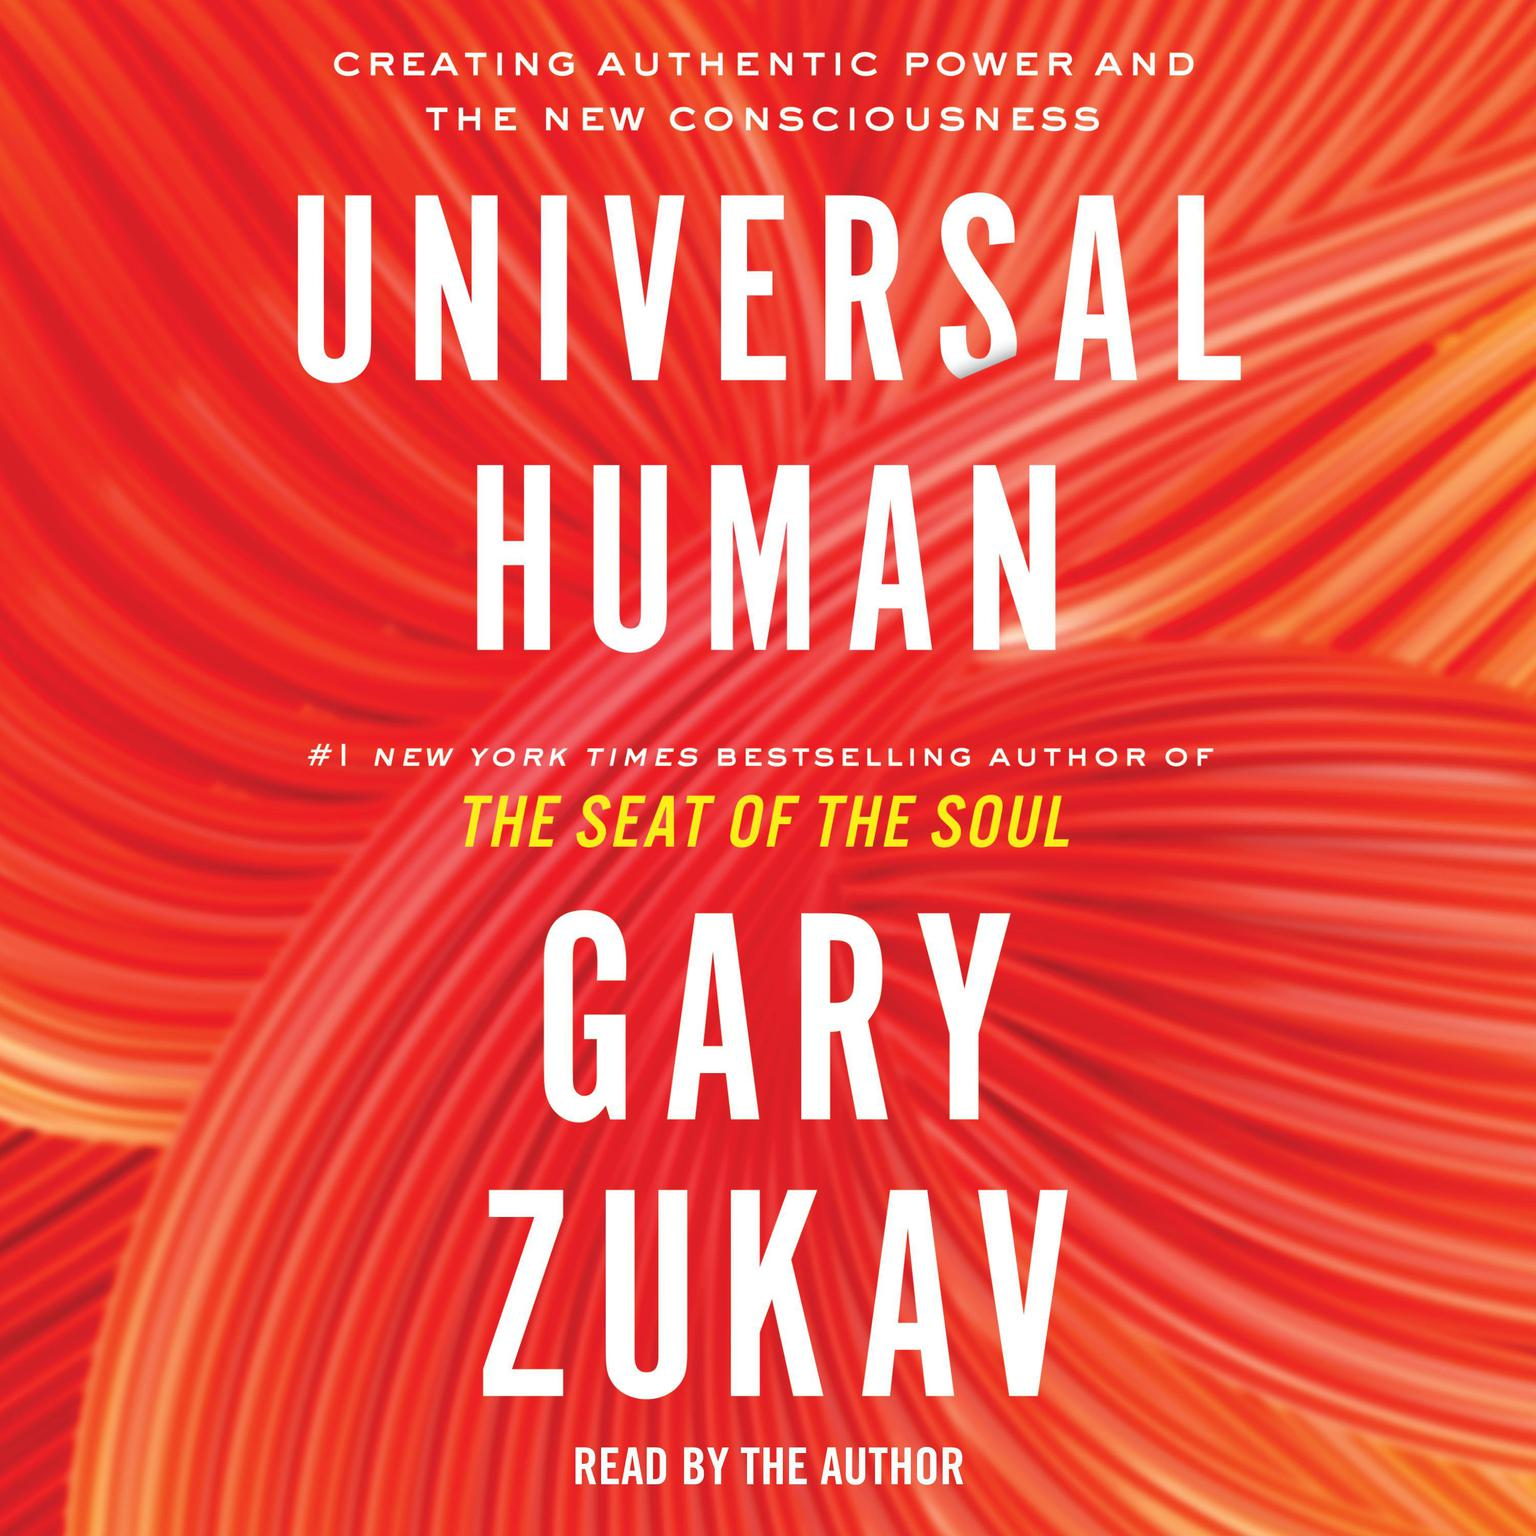 Universal Human: Creating Authentic Power and the New Consciousness Audiobook, by Gary Zukav